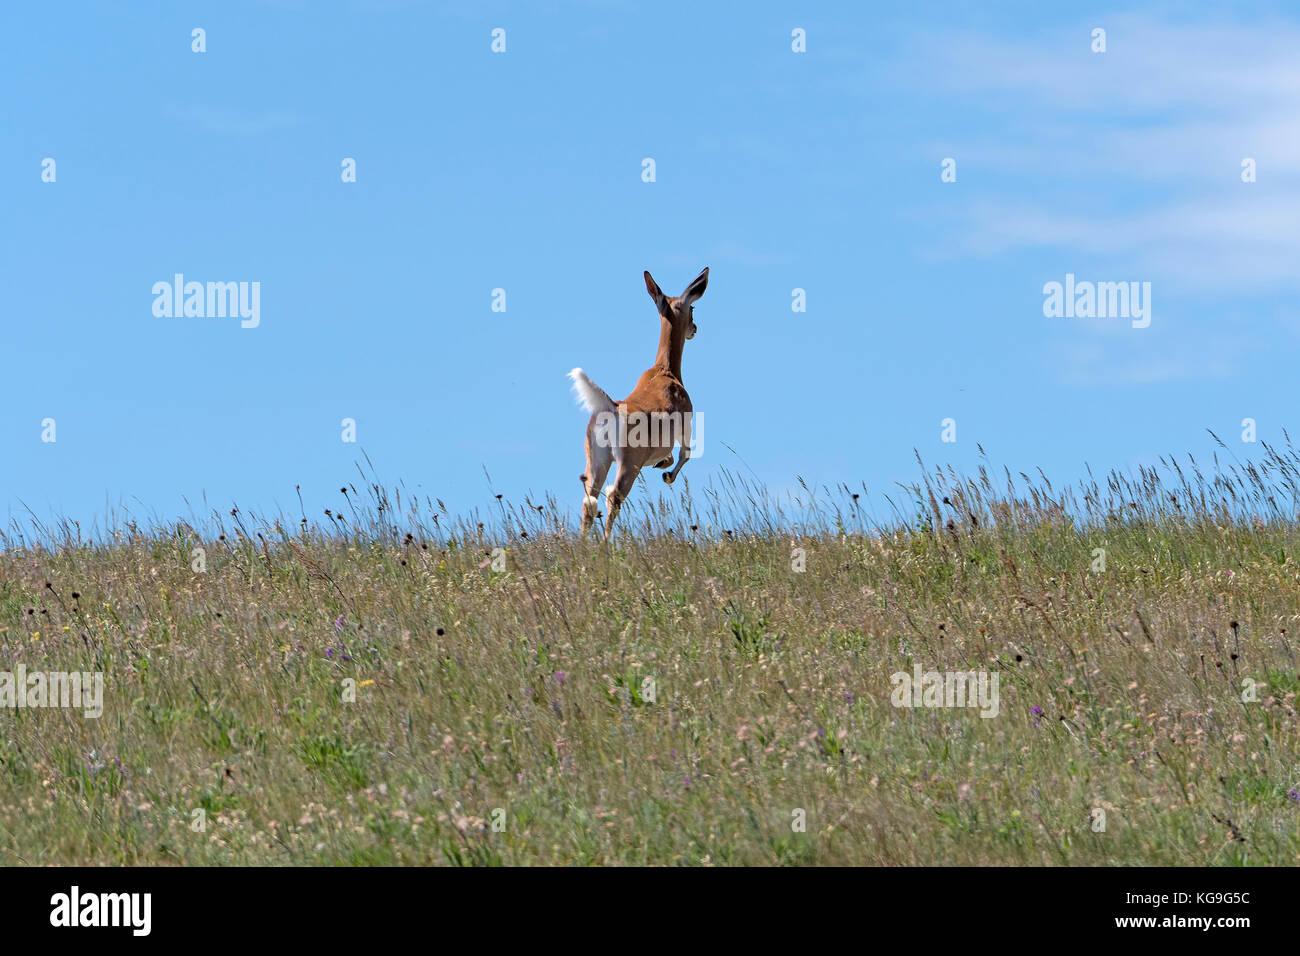 Deer Leaping across the Prairie in Theodore Roosevelt National Park in North Dakota - Stock Image